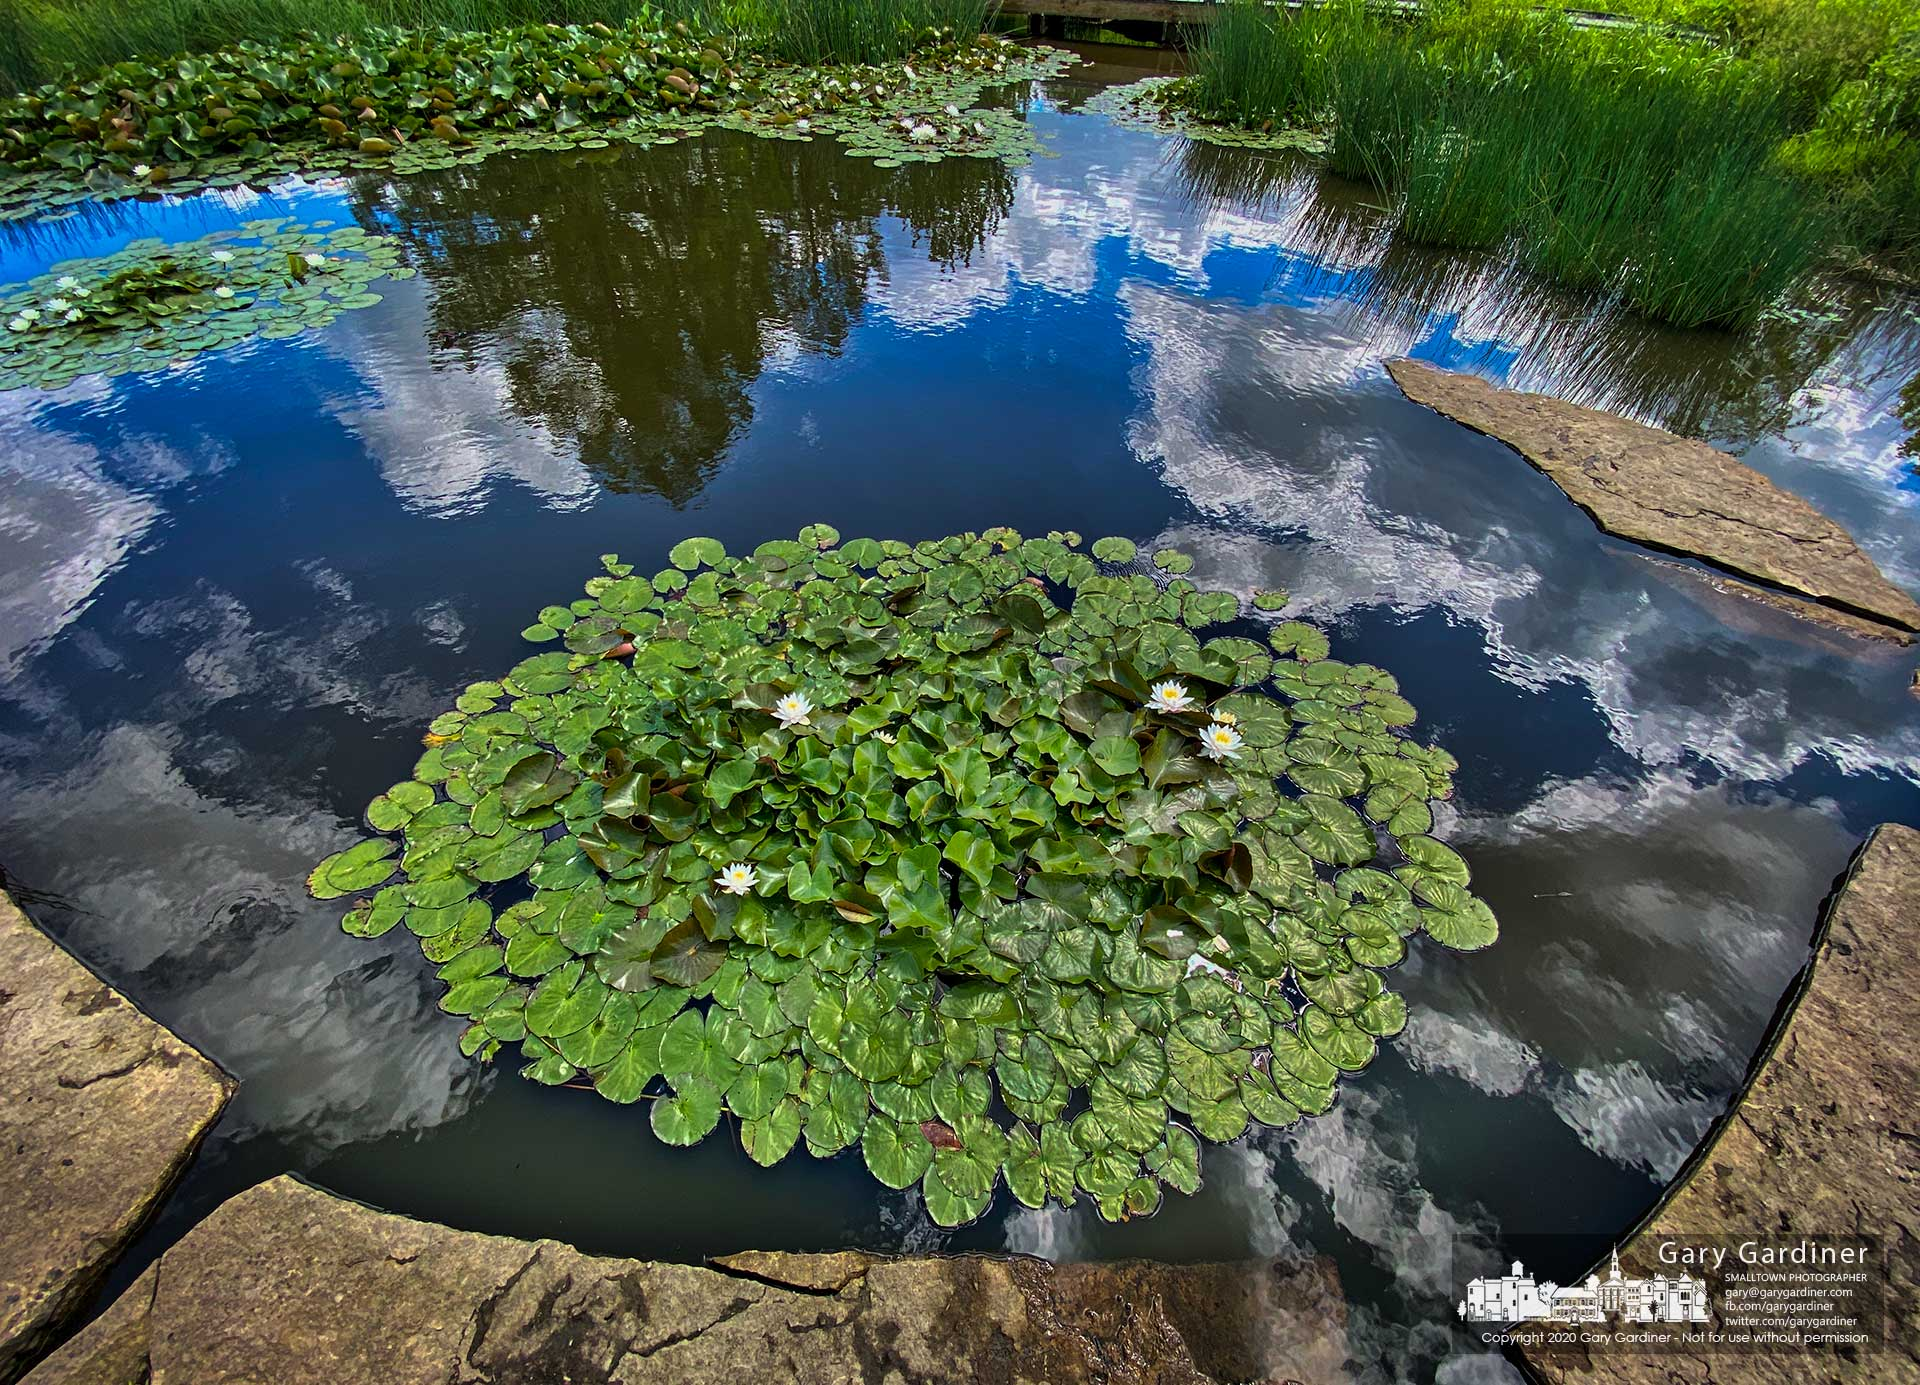 Morning sun shining through bright clouds illuminates flowering lily pads growing in a small pool at the Highlands Park wetlands. My Final Photo for June 11, 2020.